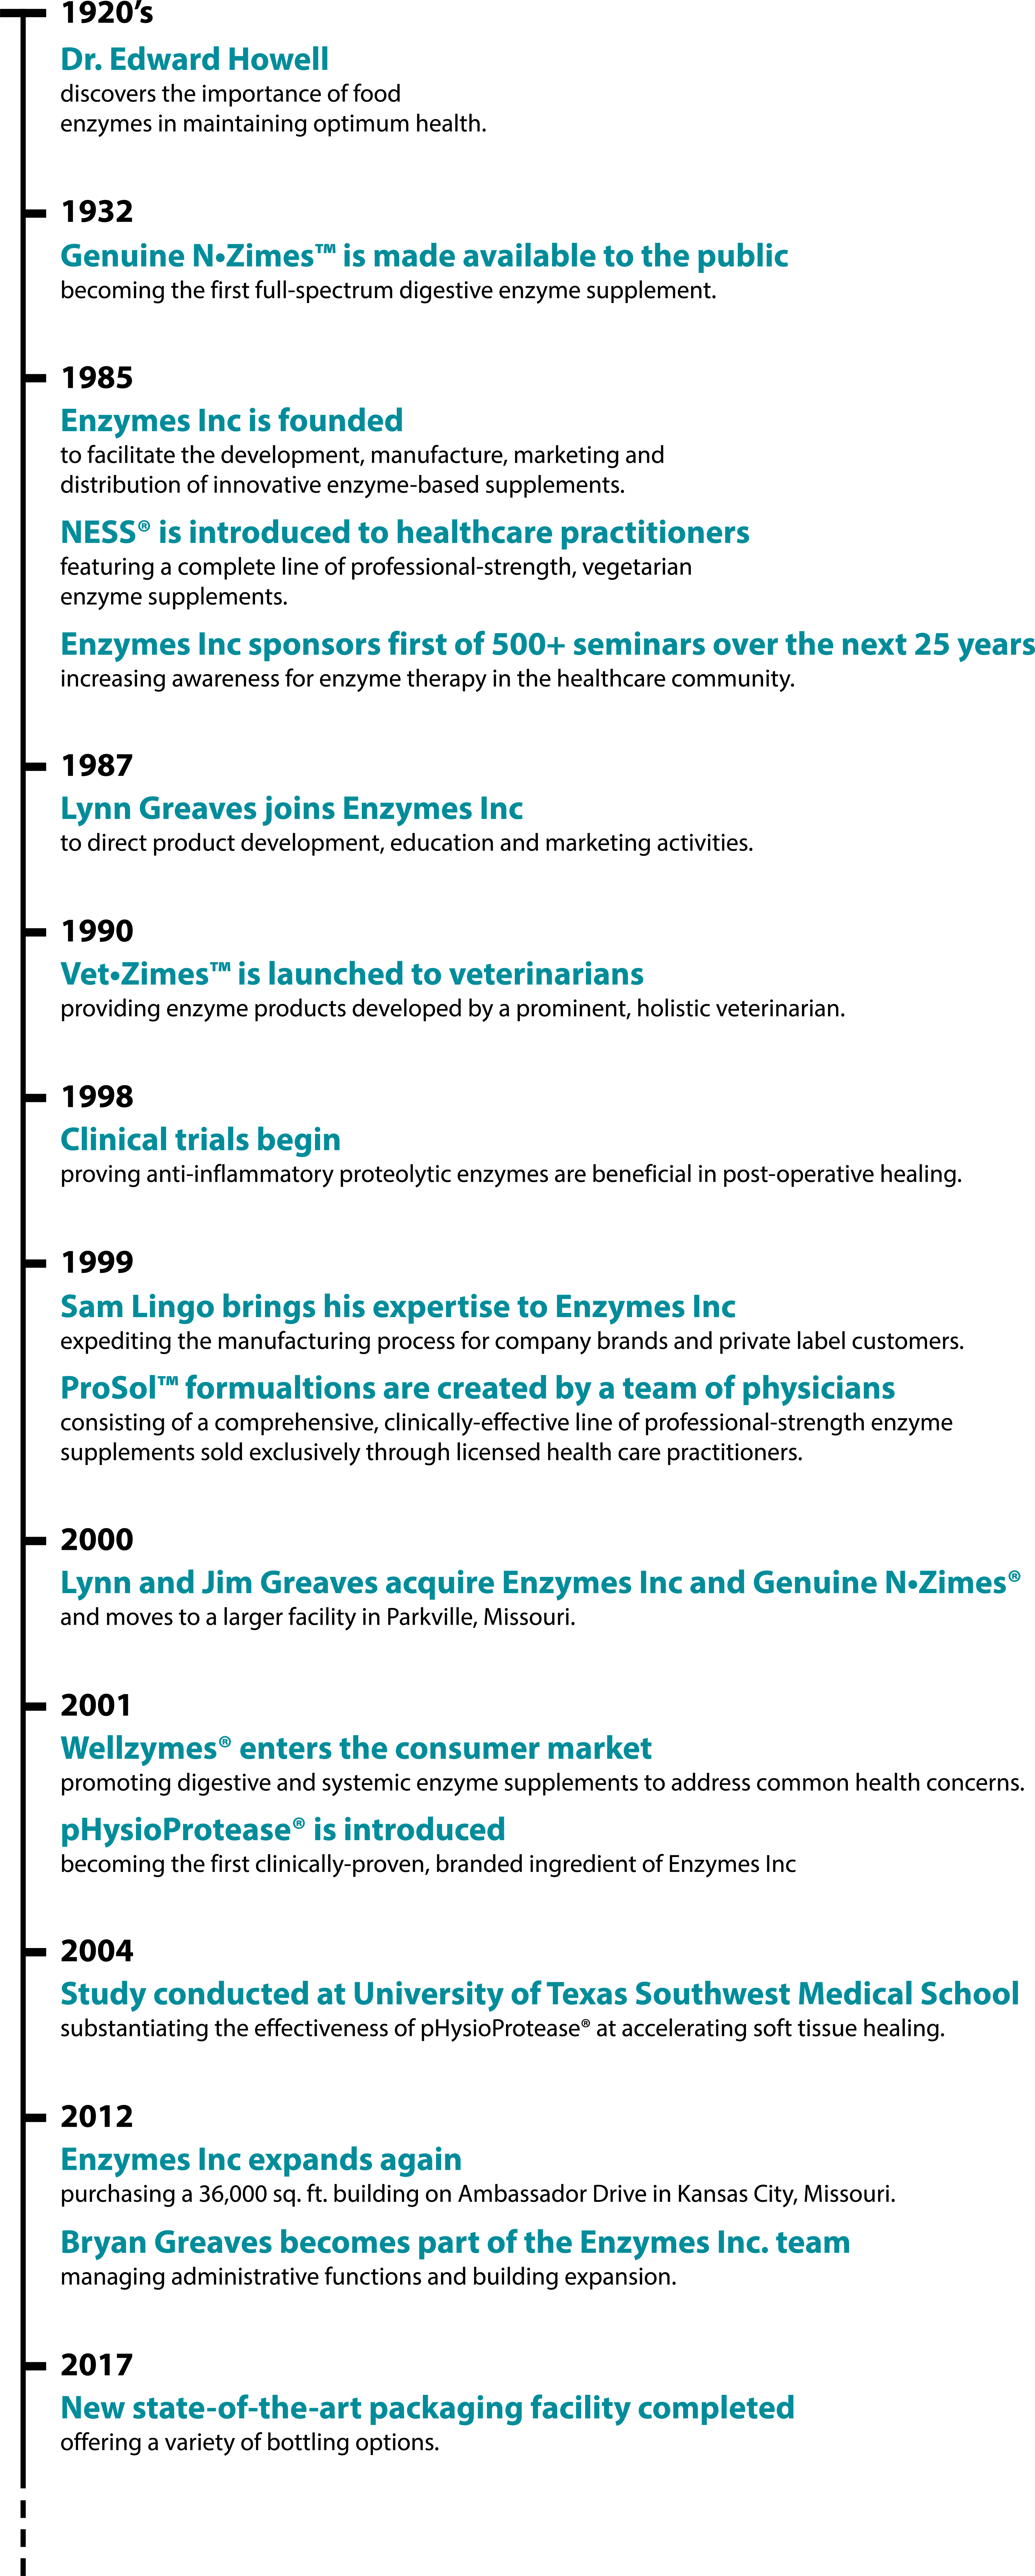 Enzymes Inc. History Timeline